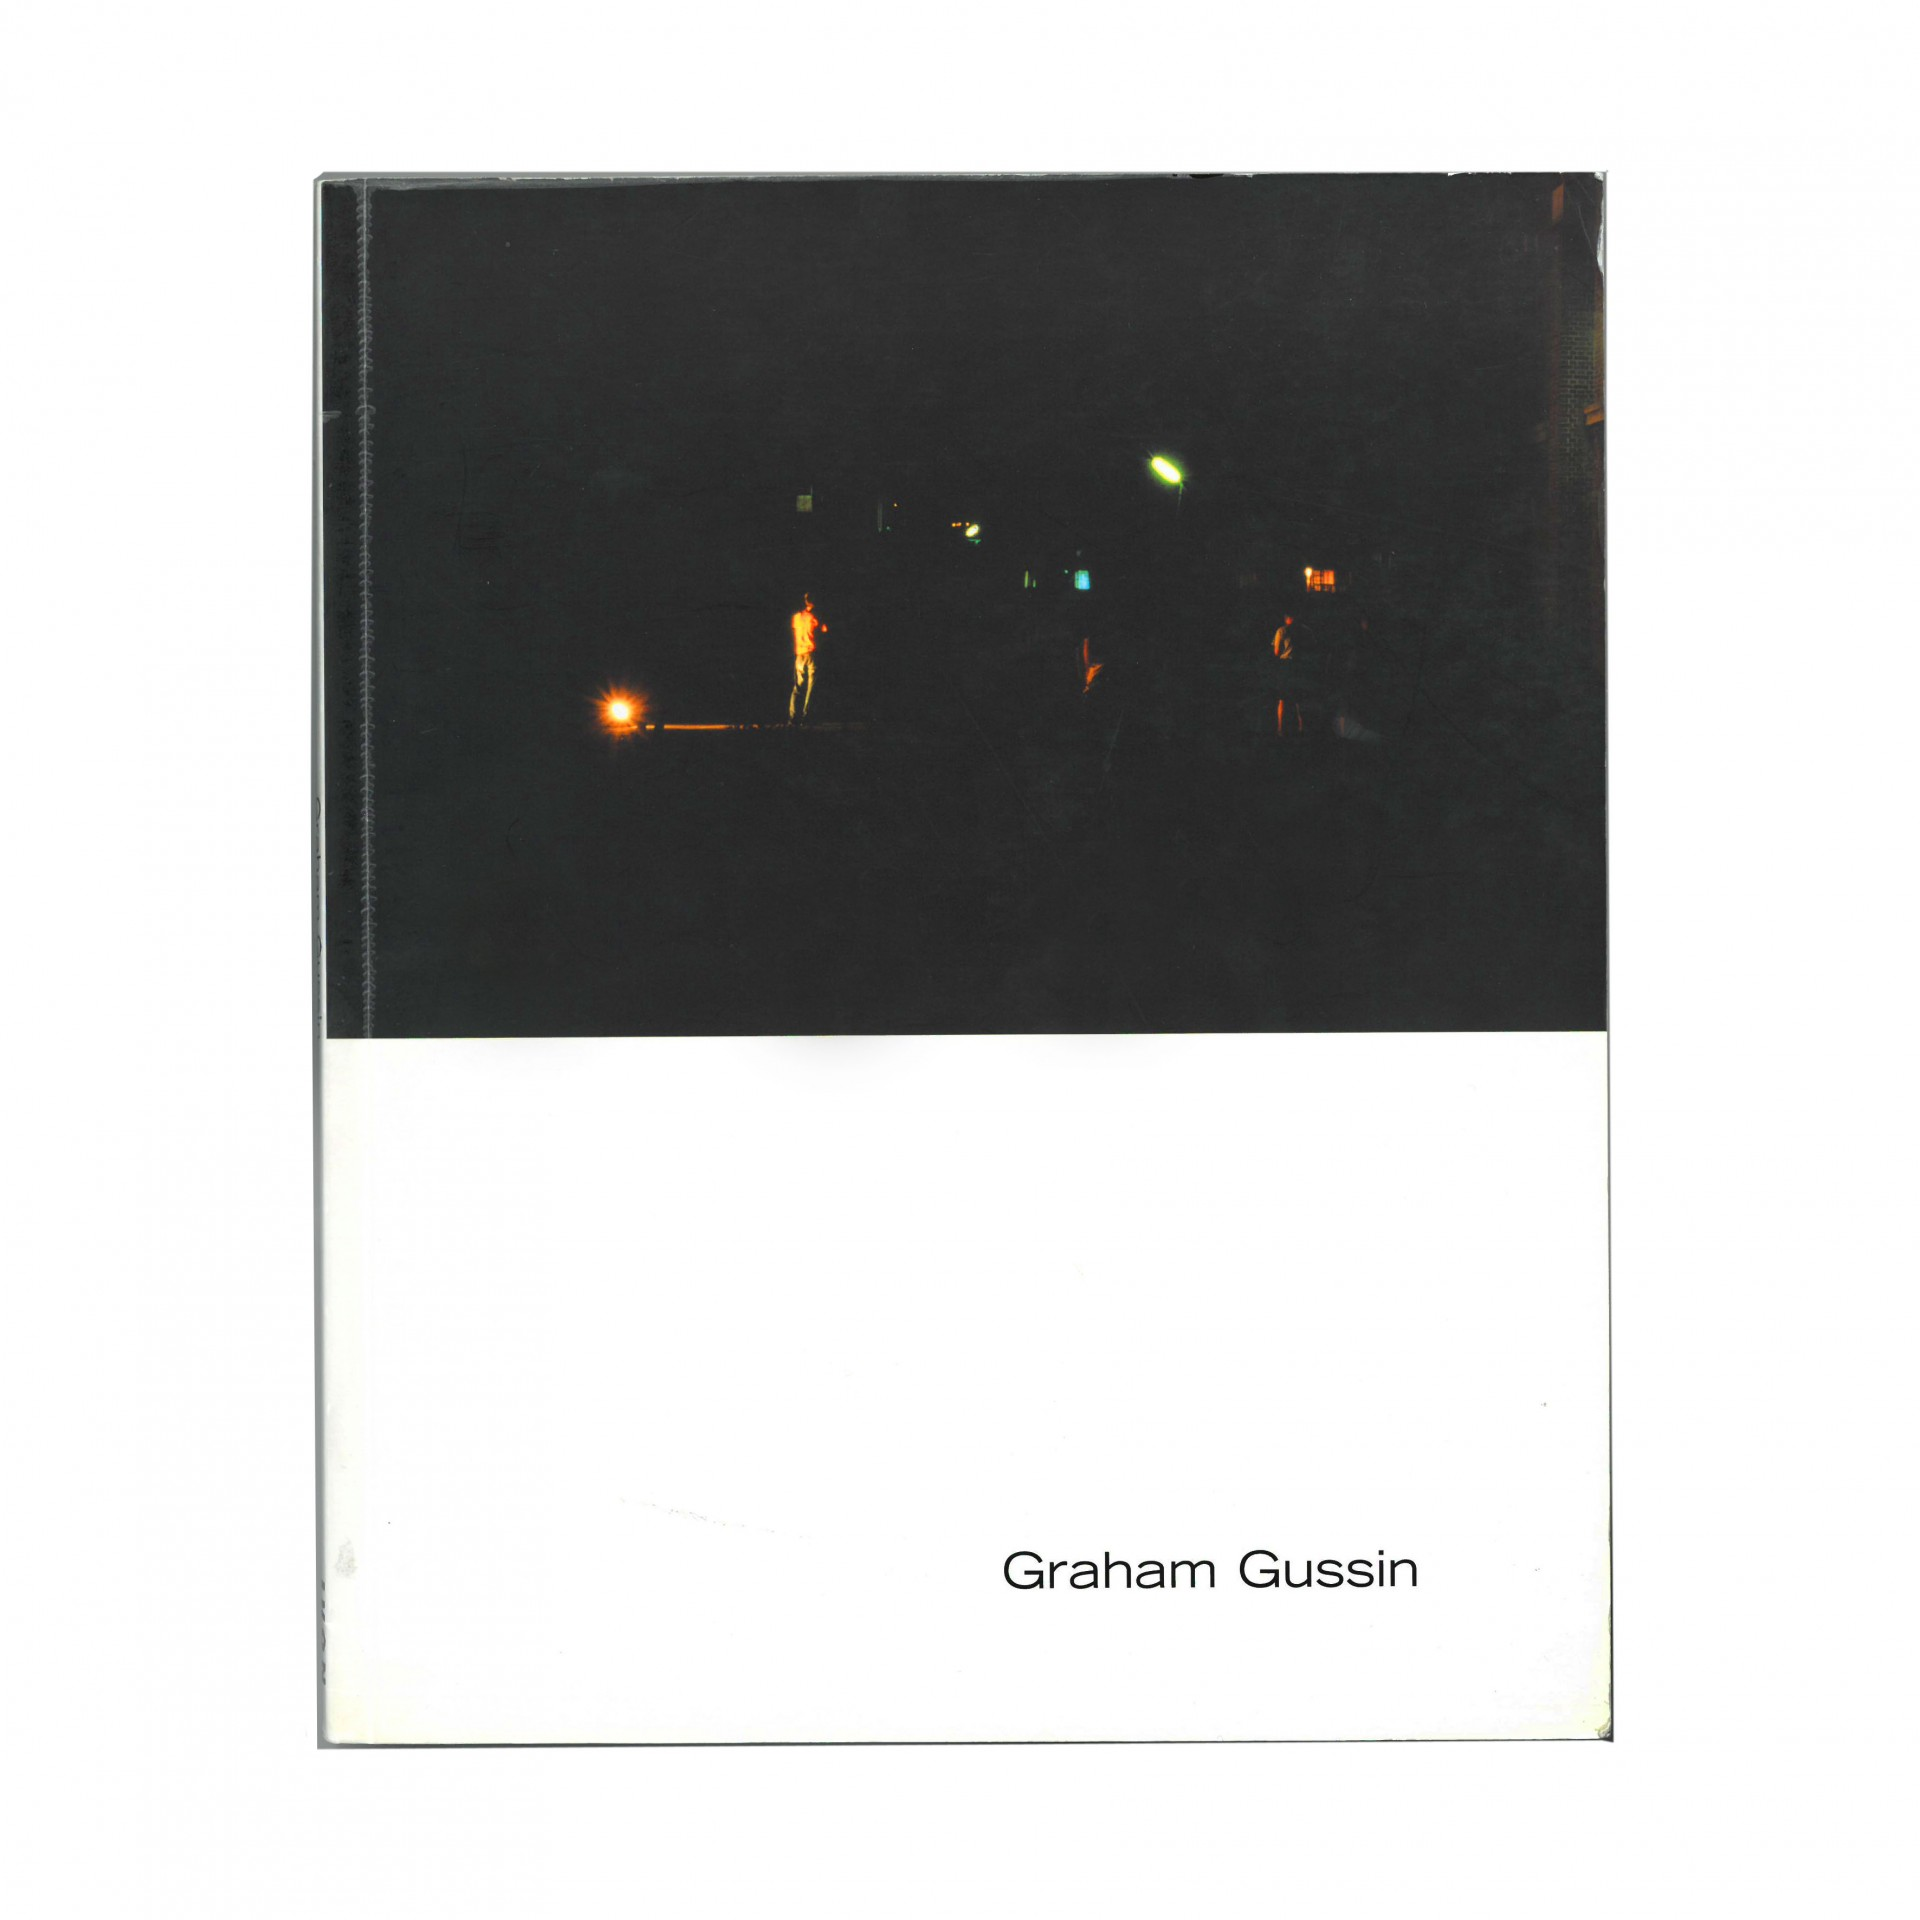 Graham Gussin